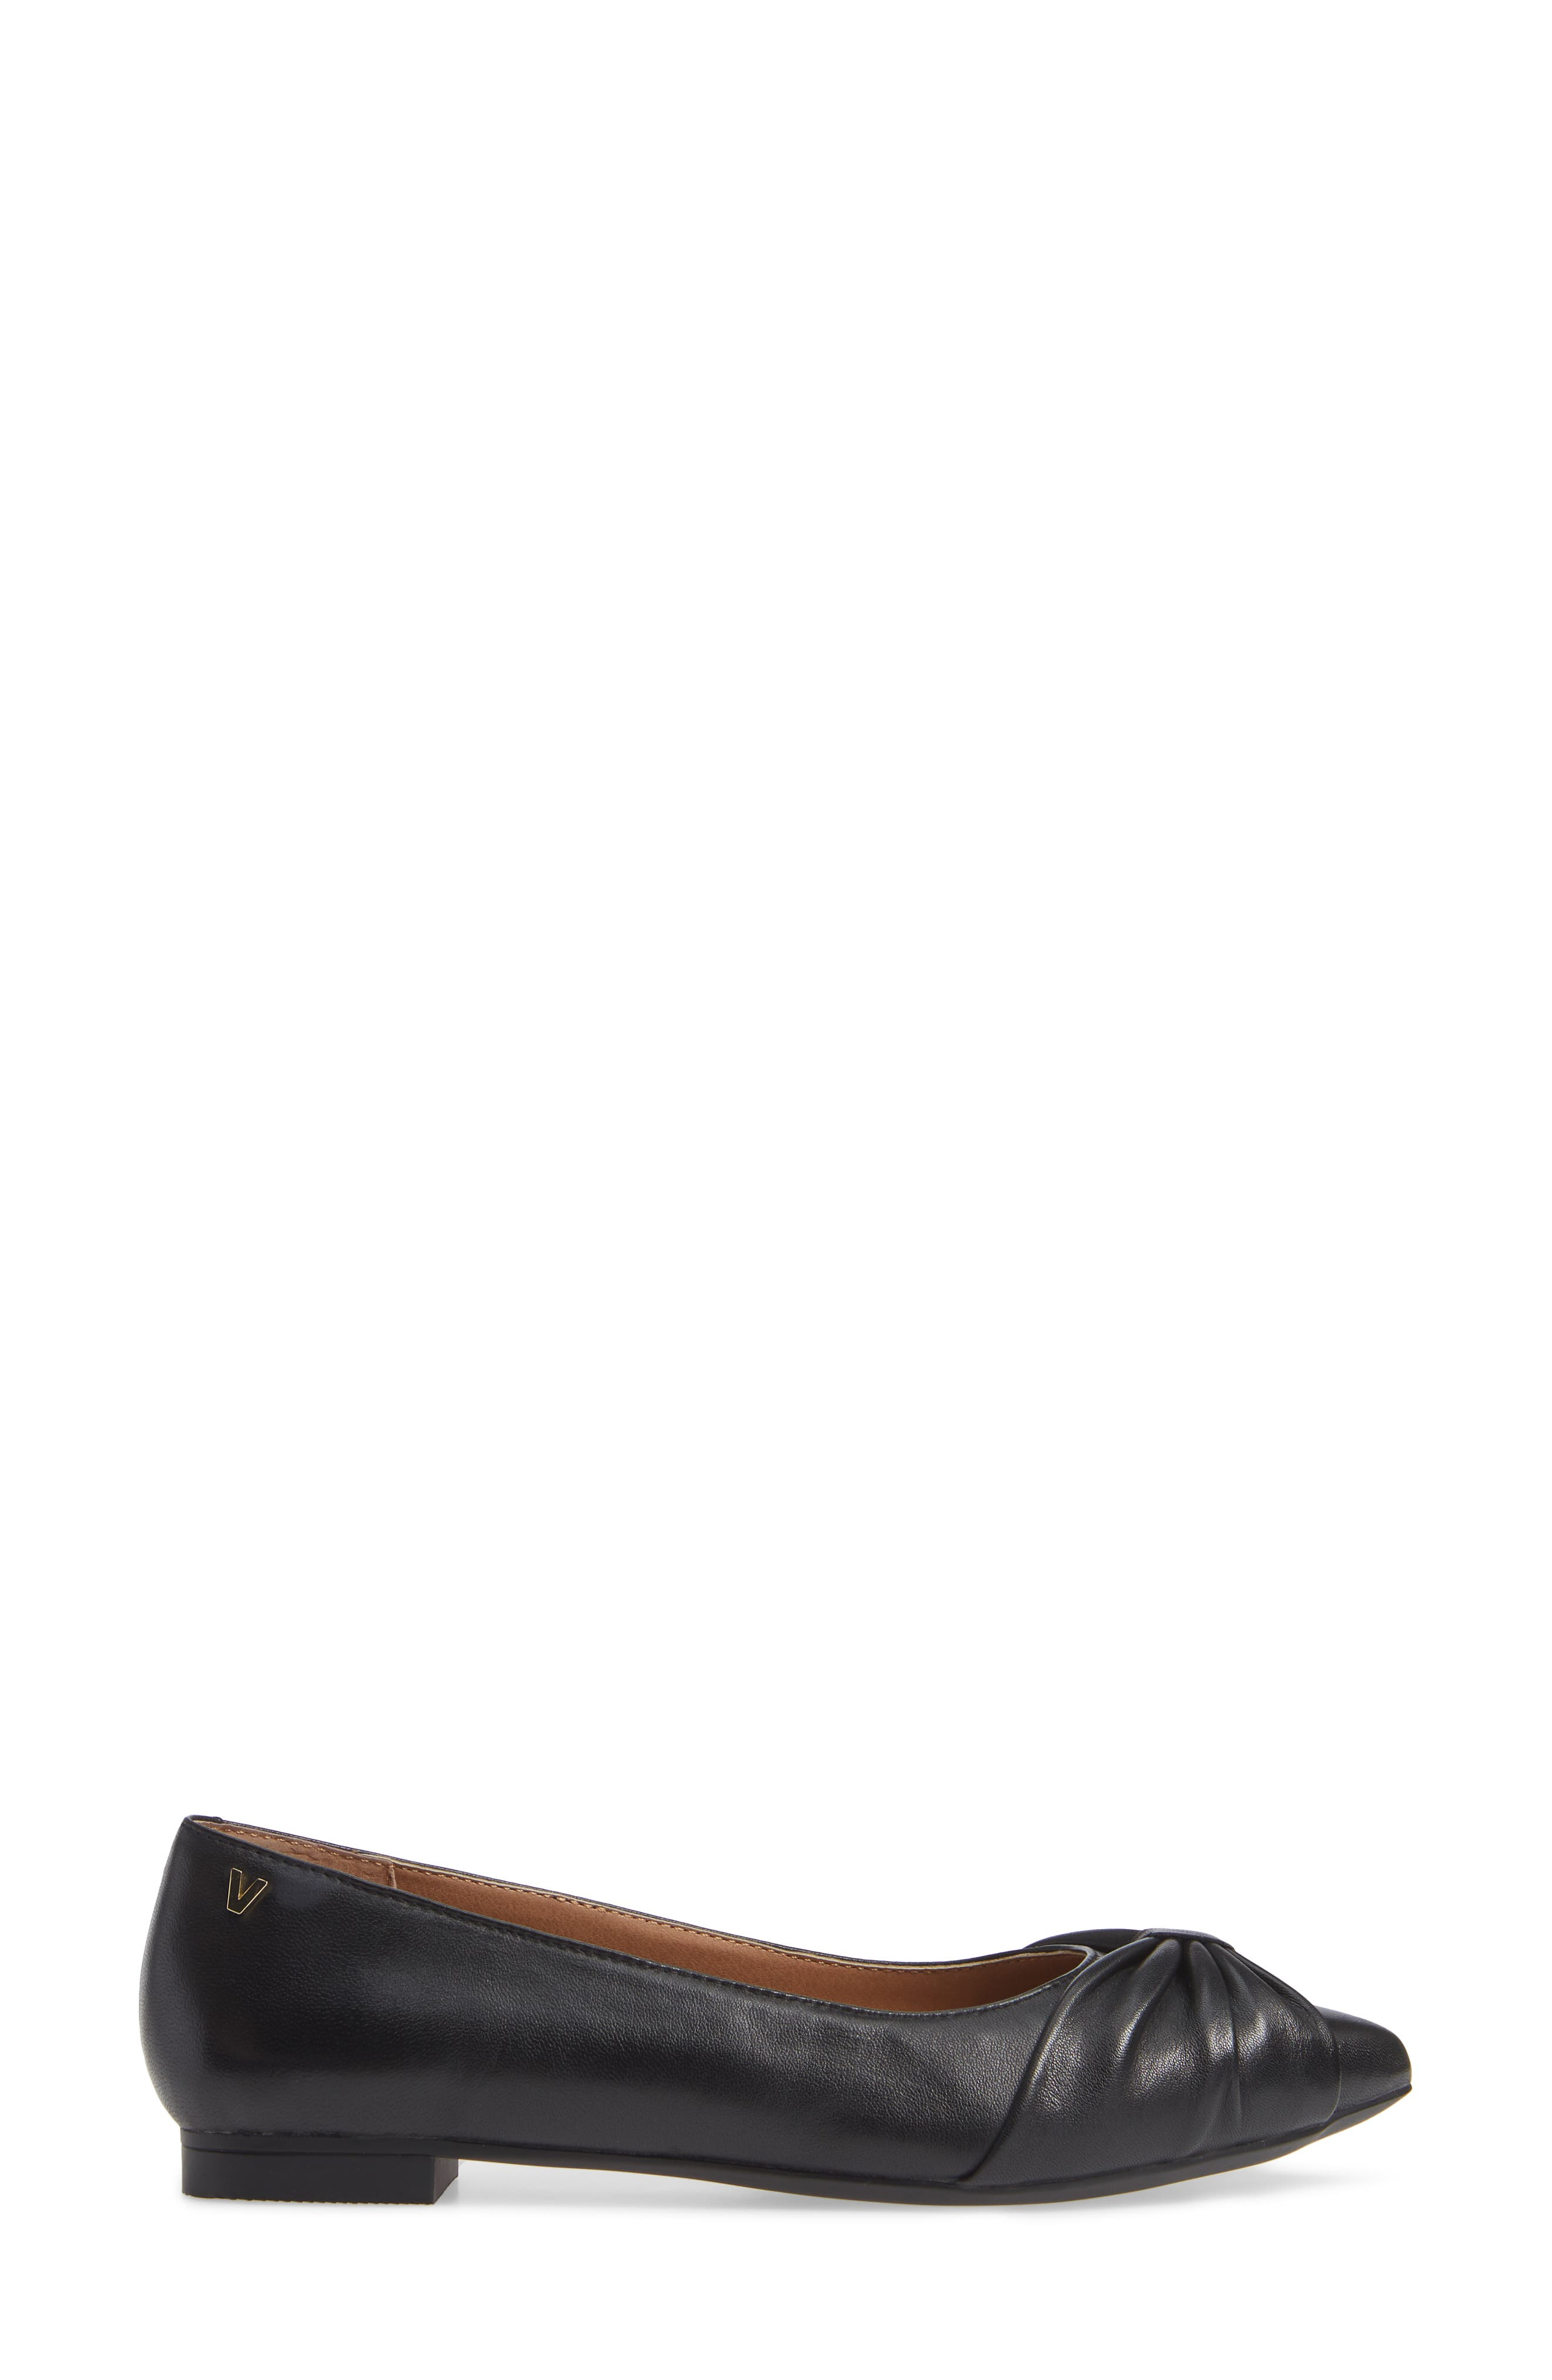 Gramercy Pointy Toe Flat,                             Alternate thumbnail 3, color,                             001